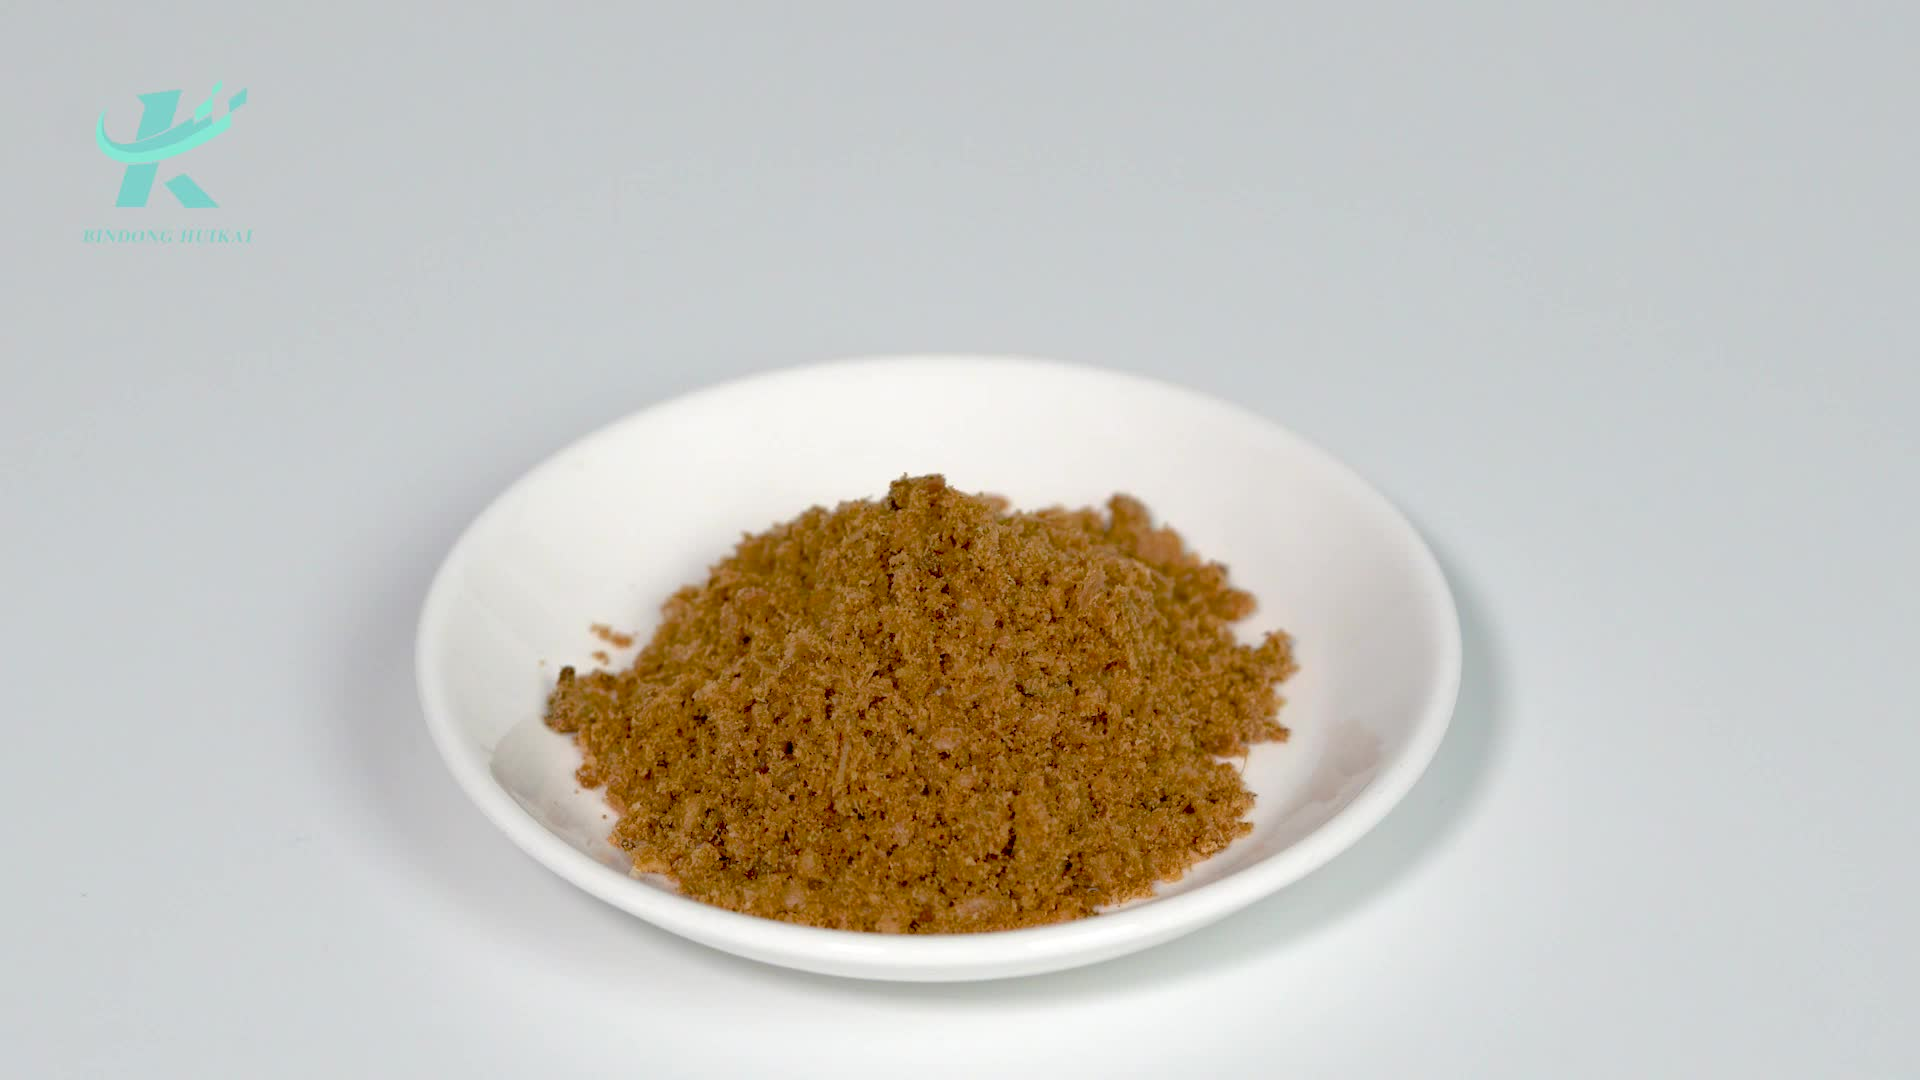 Poultry Feed Meat And Bone Meal Price Of Meat And Bone Meal Poultry Feeds Manufacturers